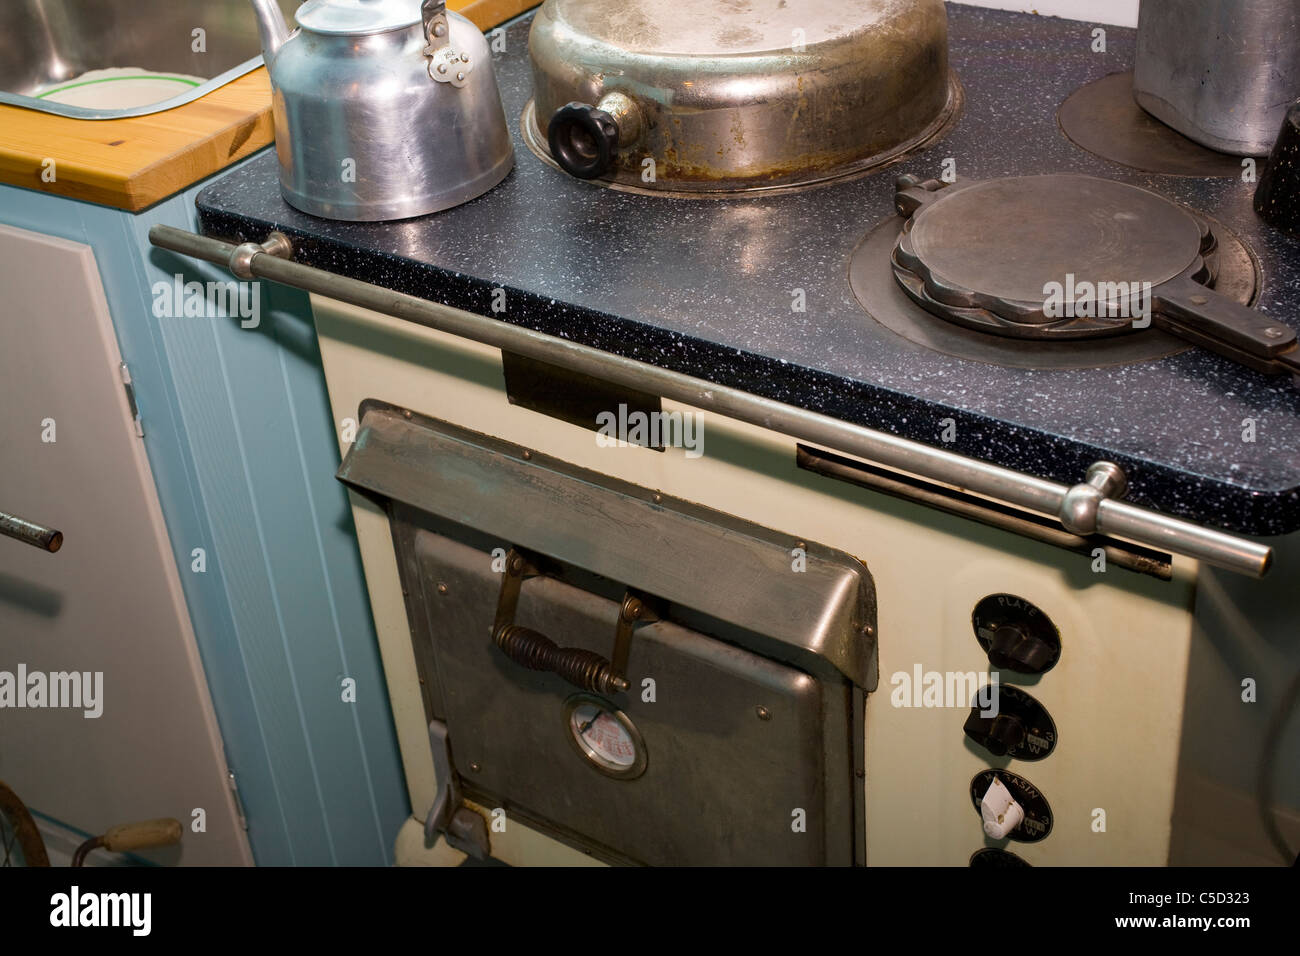 Close-up of an old AGA cooker stove - Stock Image